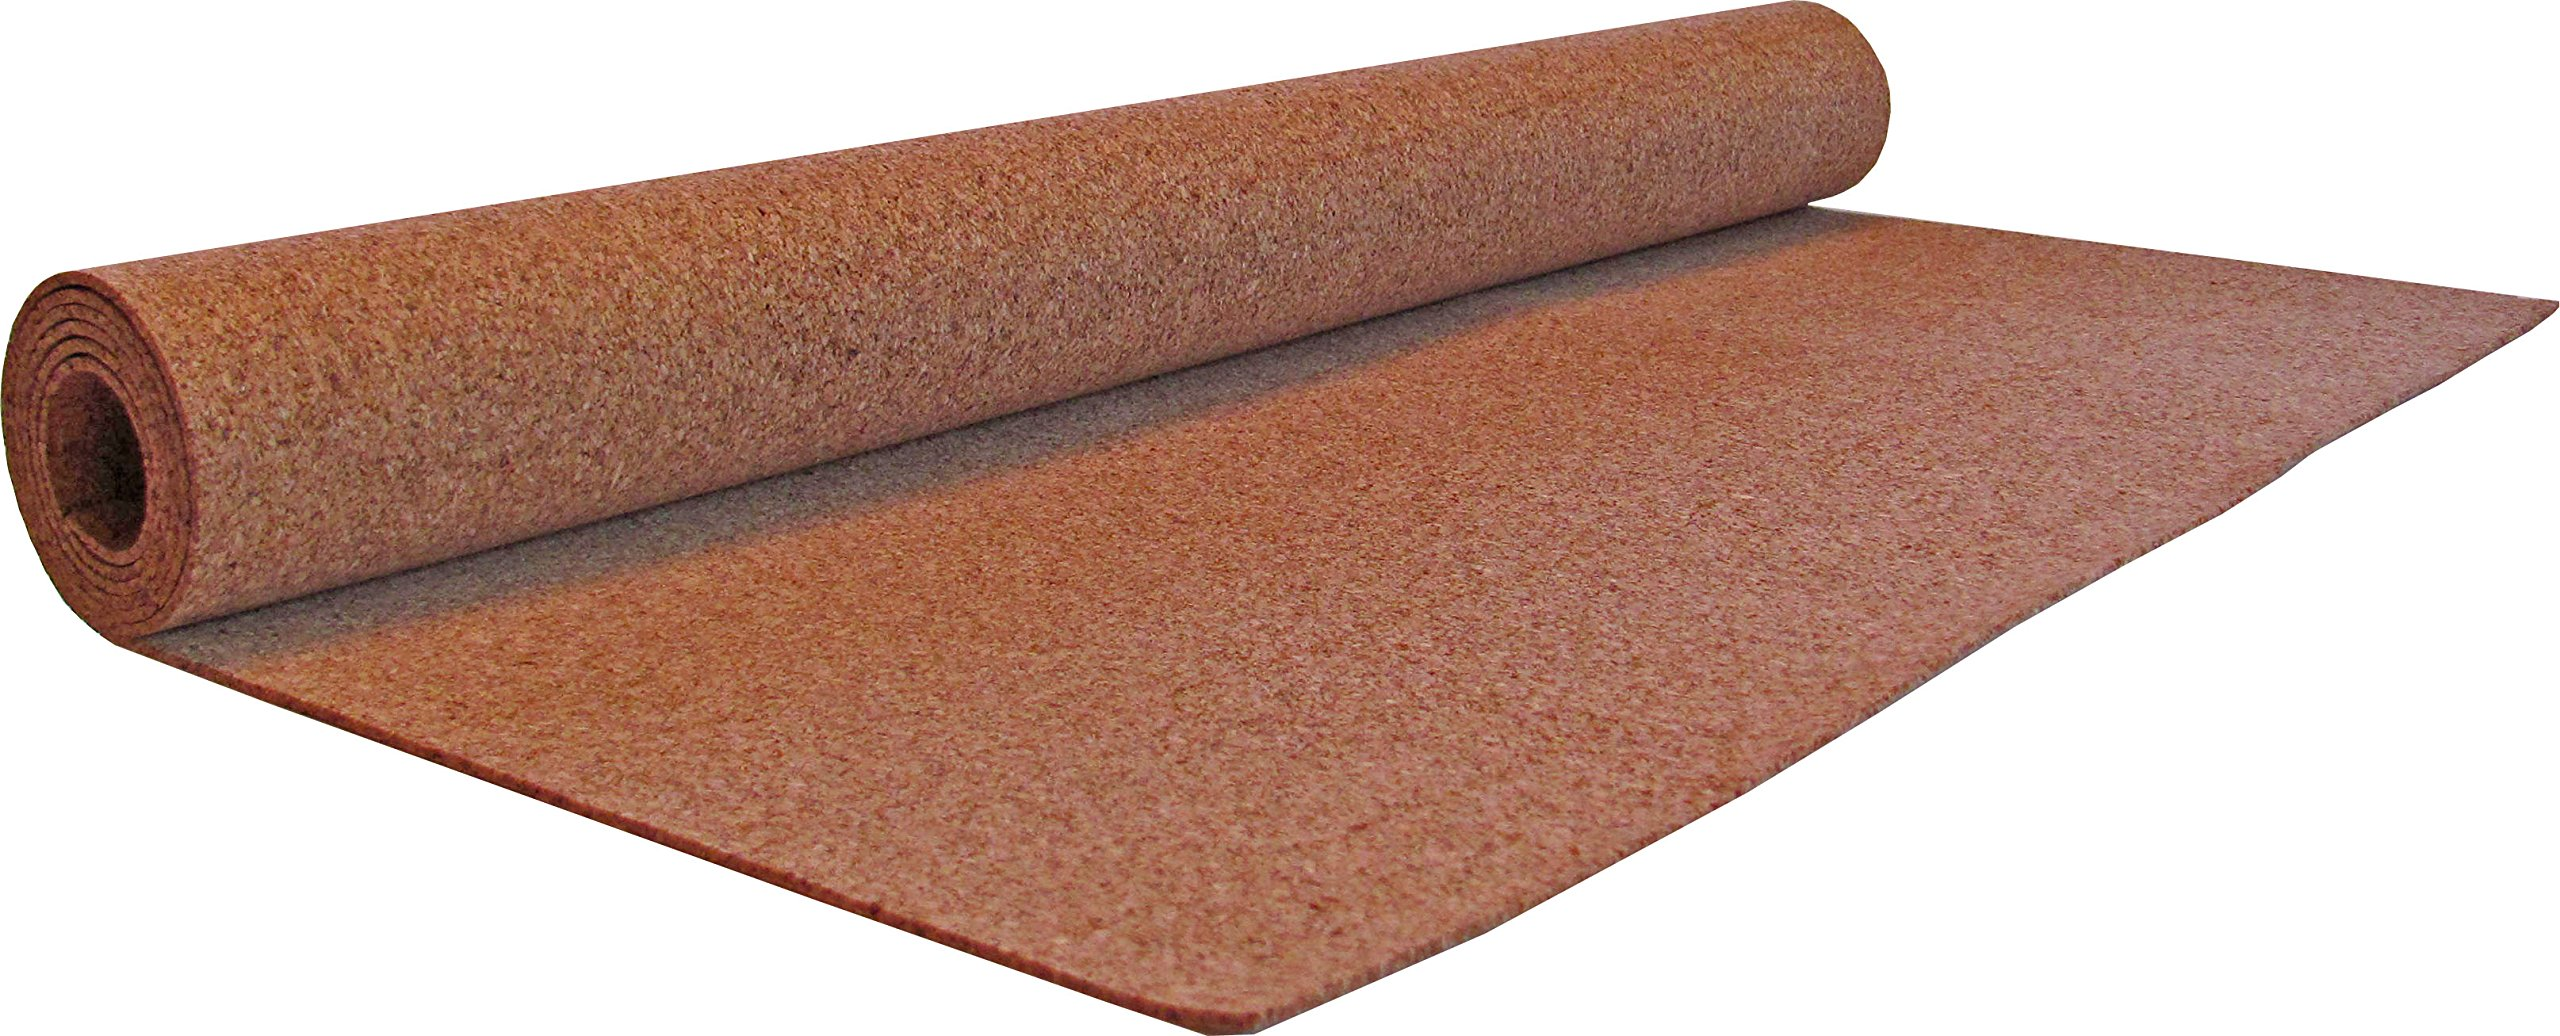 Flipside Products 38005 Cork Roll, 6 mm, 4' High x 6' Long by Flipside Products